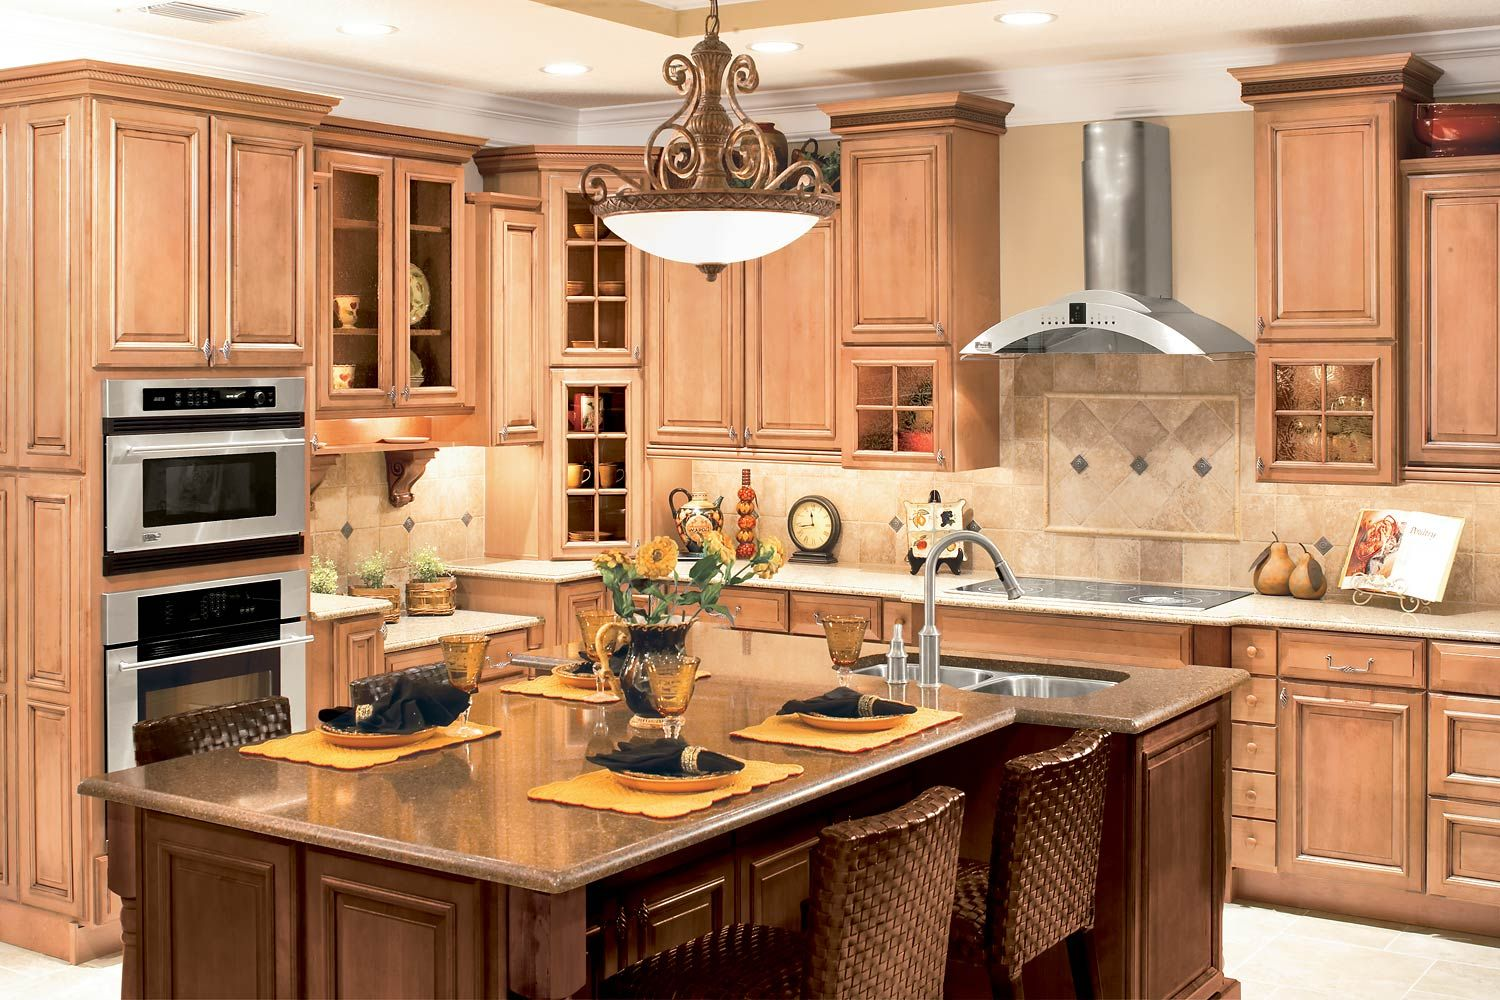 durango maple mocha glaze kitchen timberlake cabinetry our portfolio select cabinets. Black Bedroom Furniture Sets. Home Design Ideas